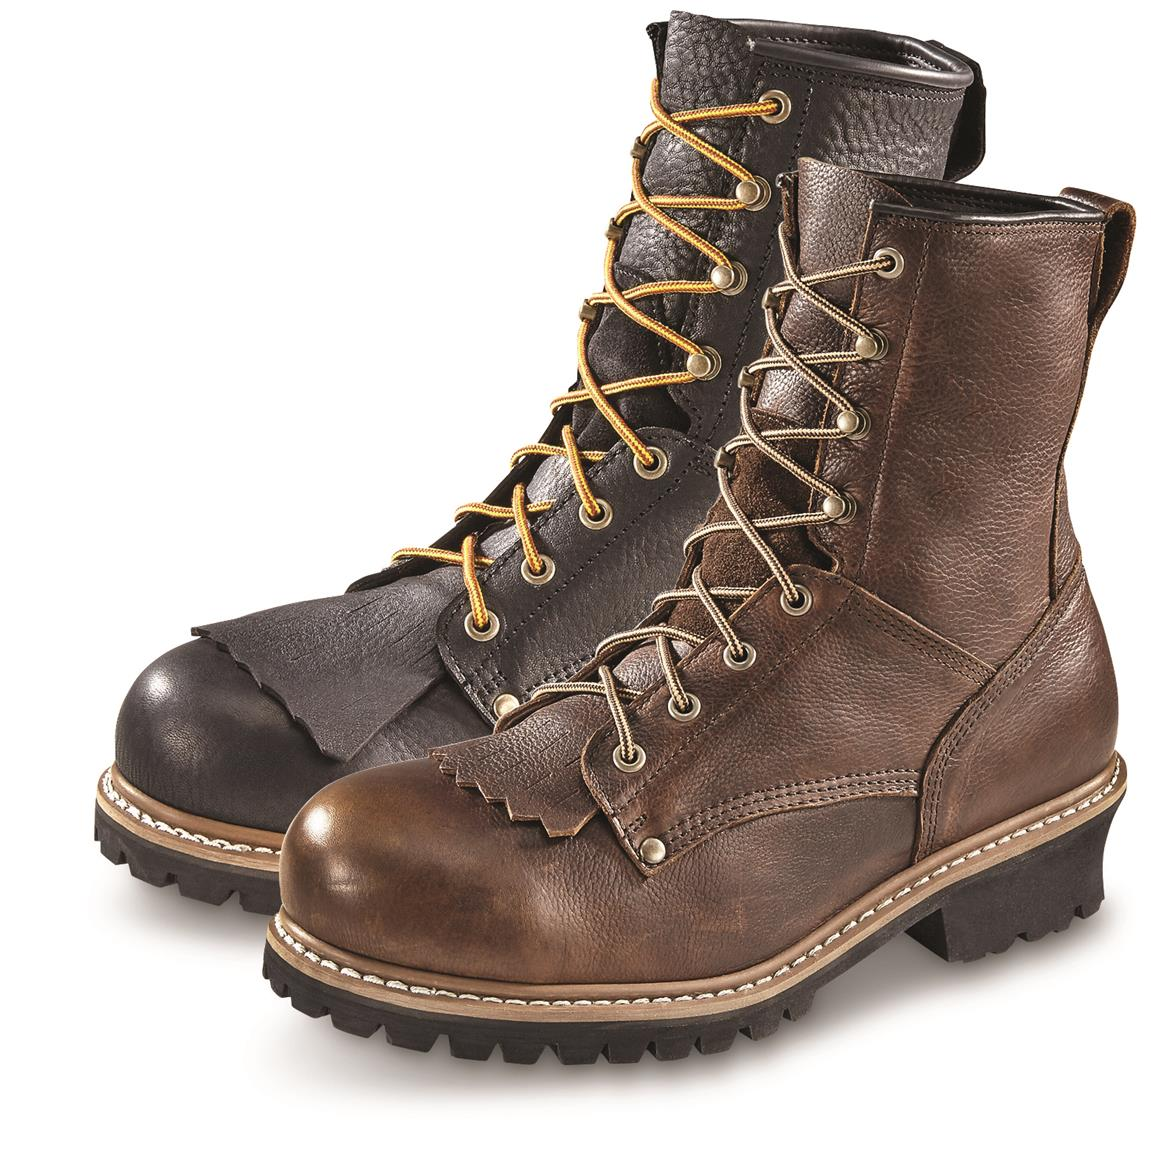 Guide Gear Men's Sawtooth Logger Boots, Steel Toe • Black or Brown